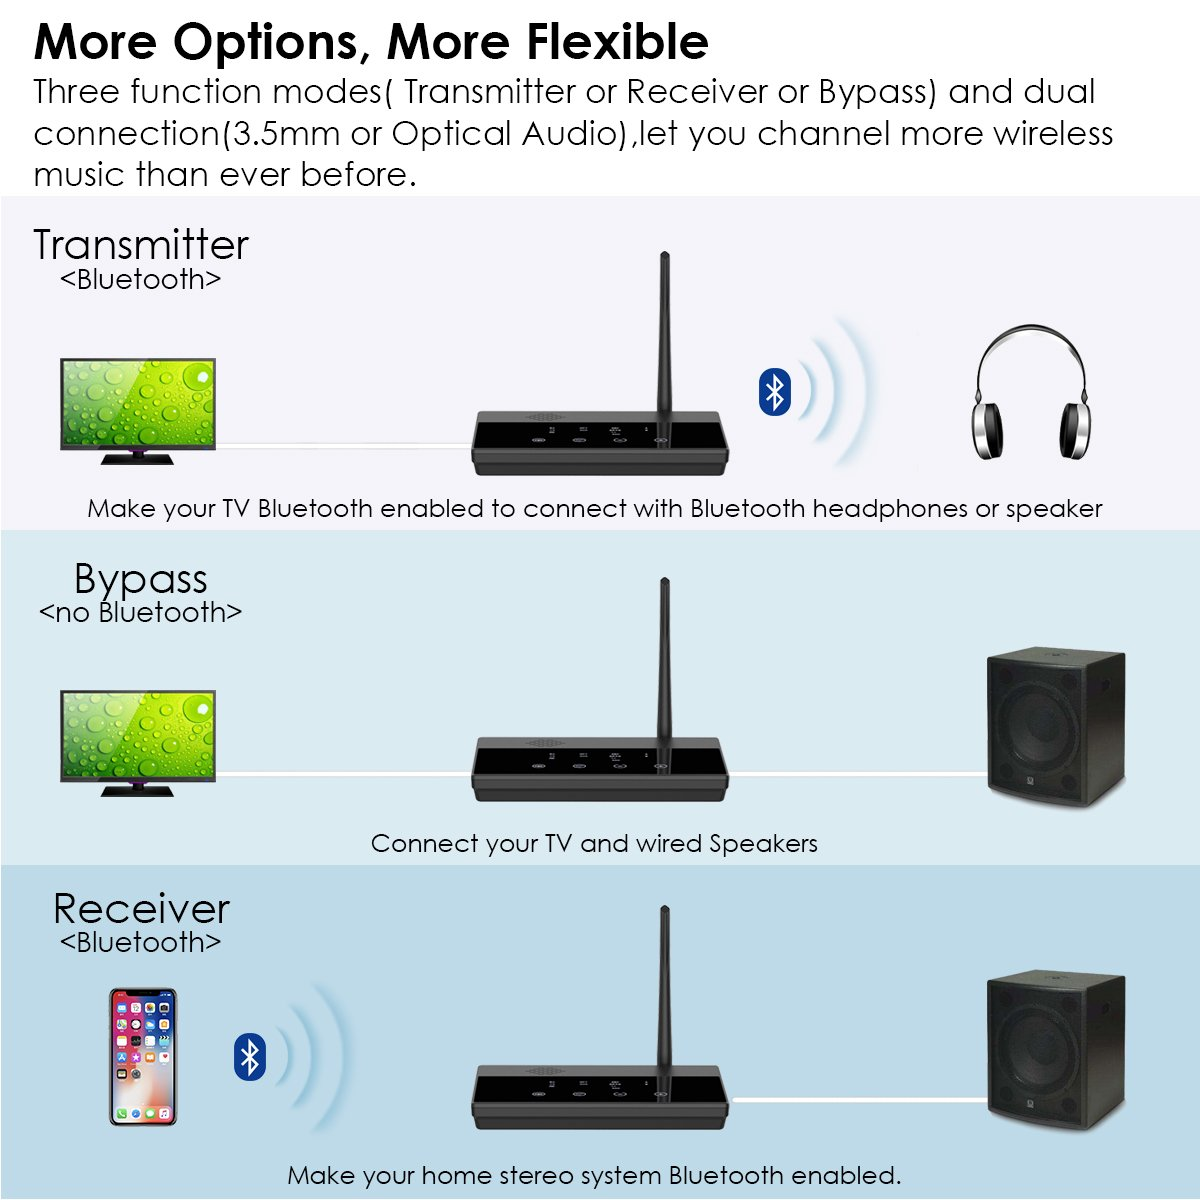 Besign Long Range BE-RTX Bluetooth Transmitter and Receiver, Digital Optical TOSLINK and 3.5mm Wireless Audio Adapter for TV/Home Stereo System - Aptx, Aptx Low Latency [2-Year Warranty] by BESIGN (Image #2)